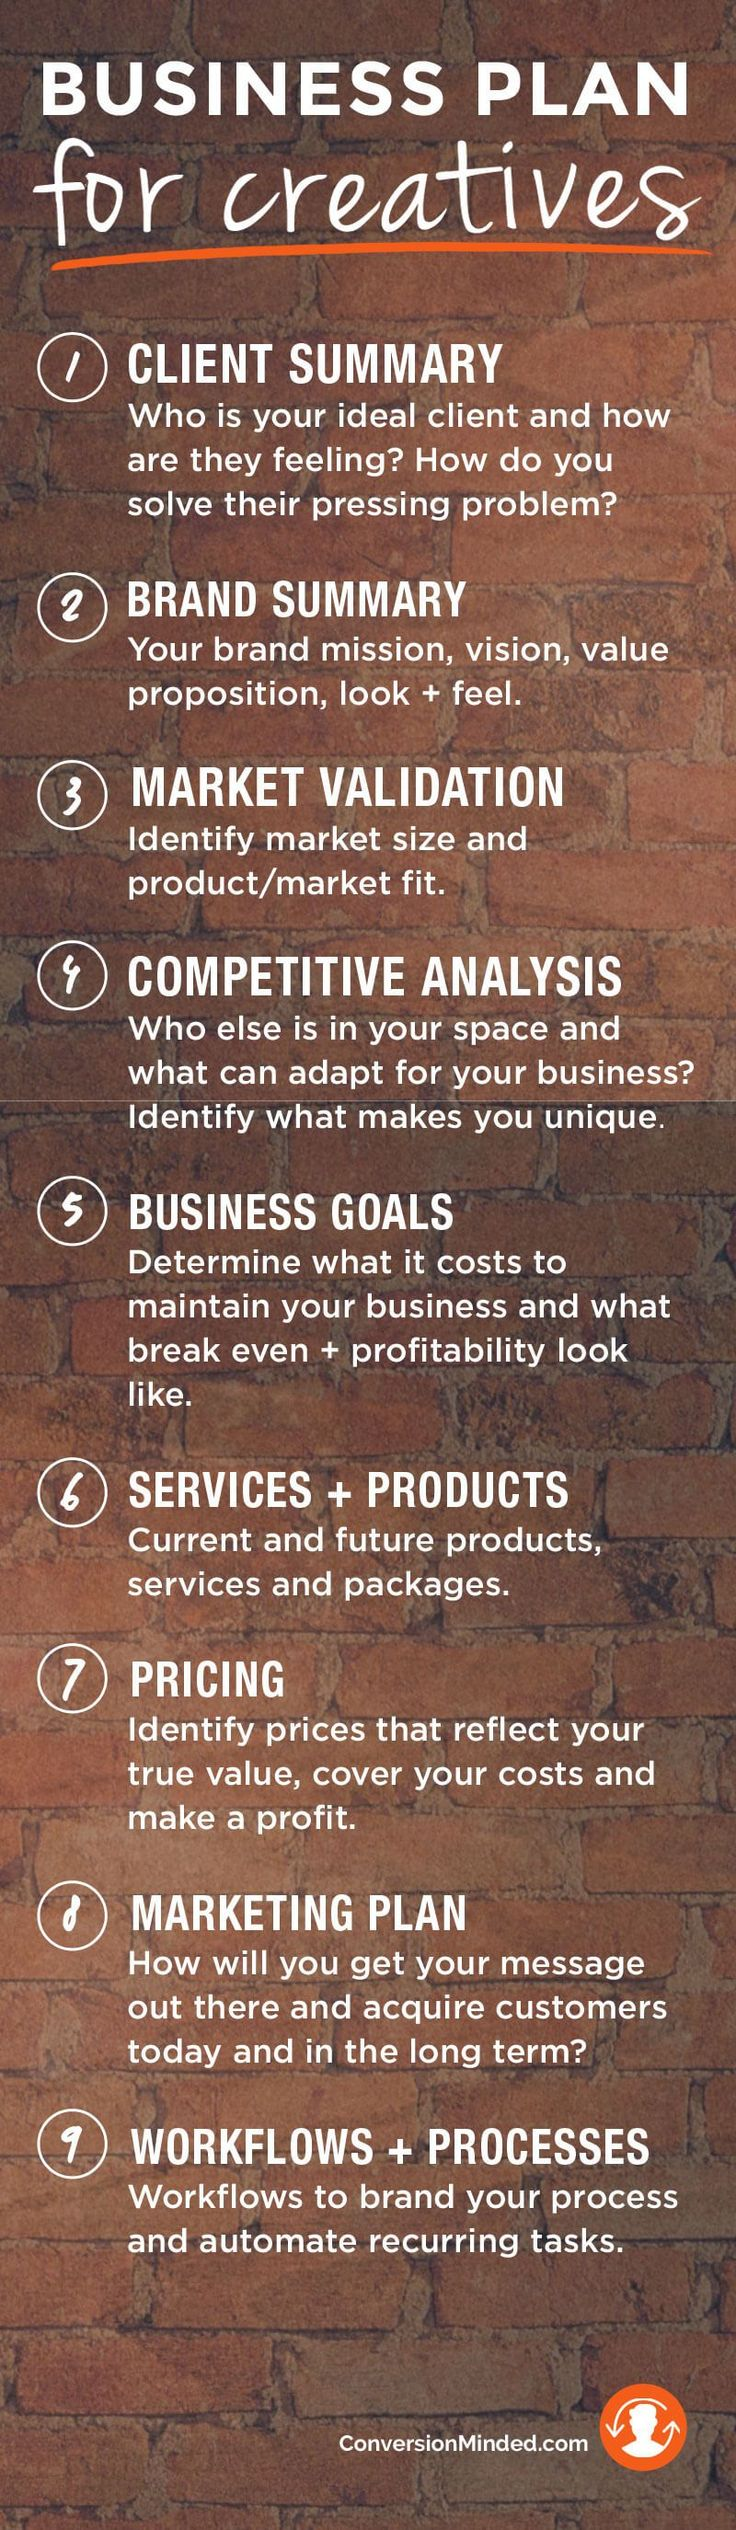 FREE Business Plan Template | If you want to know how to write a business plan, this post is for you! It includes a step by step business plan template to help start ups, creatives, and entrepreneurs validate your ideas, plan your future business, and establish goals. Click through to see the business planner!